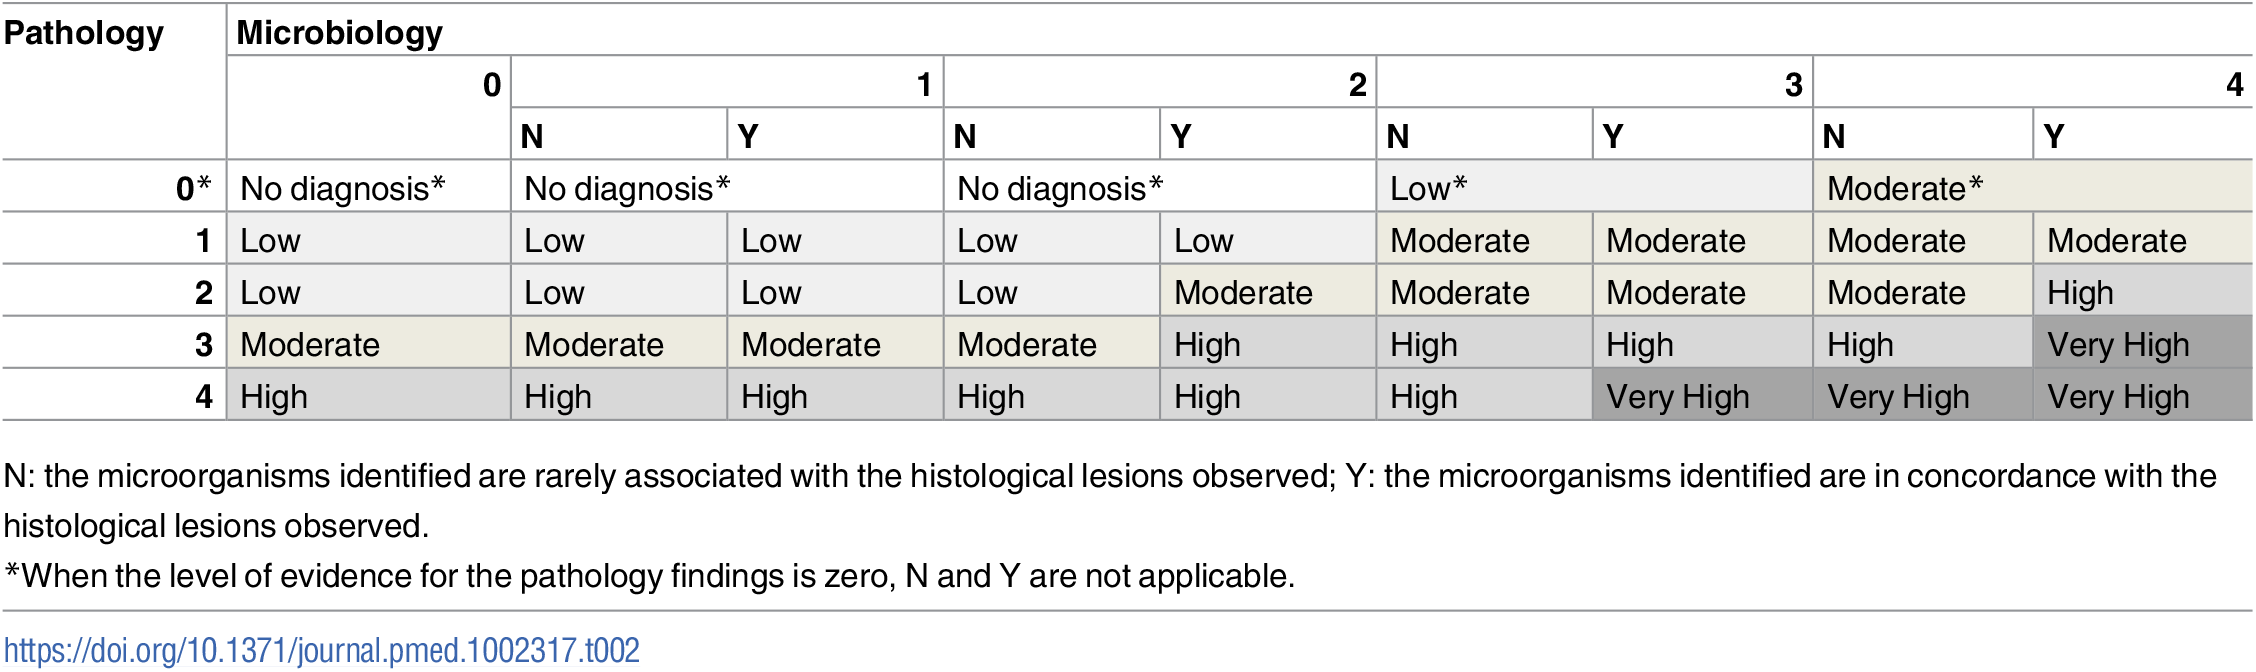 Level of certainty of the diagnosis of cause of death obtained by combination of the strength of the evidence of the pathological and microbiological findings.